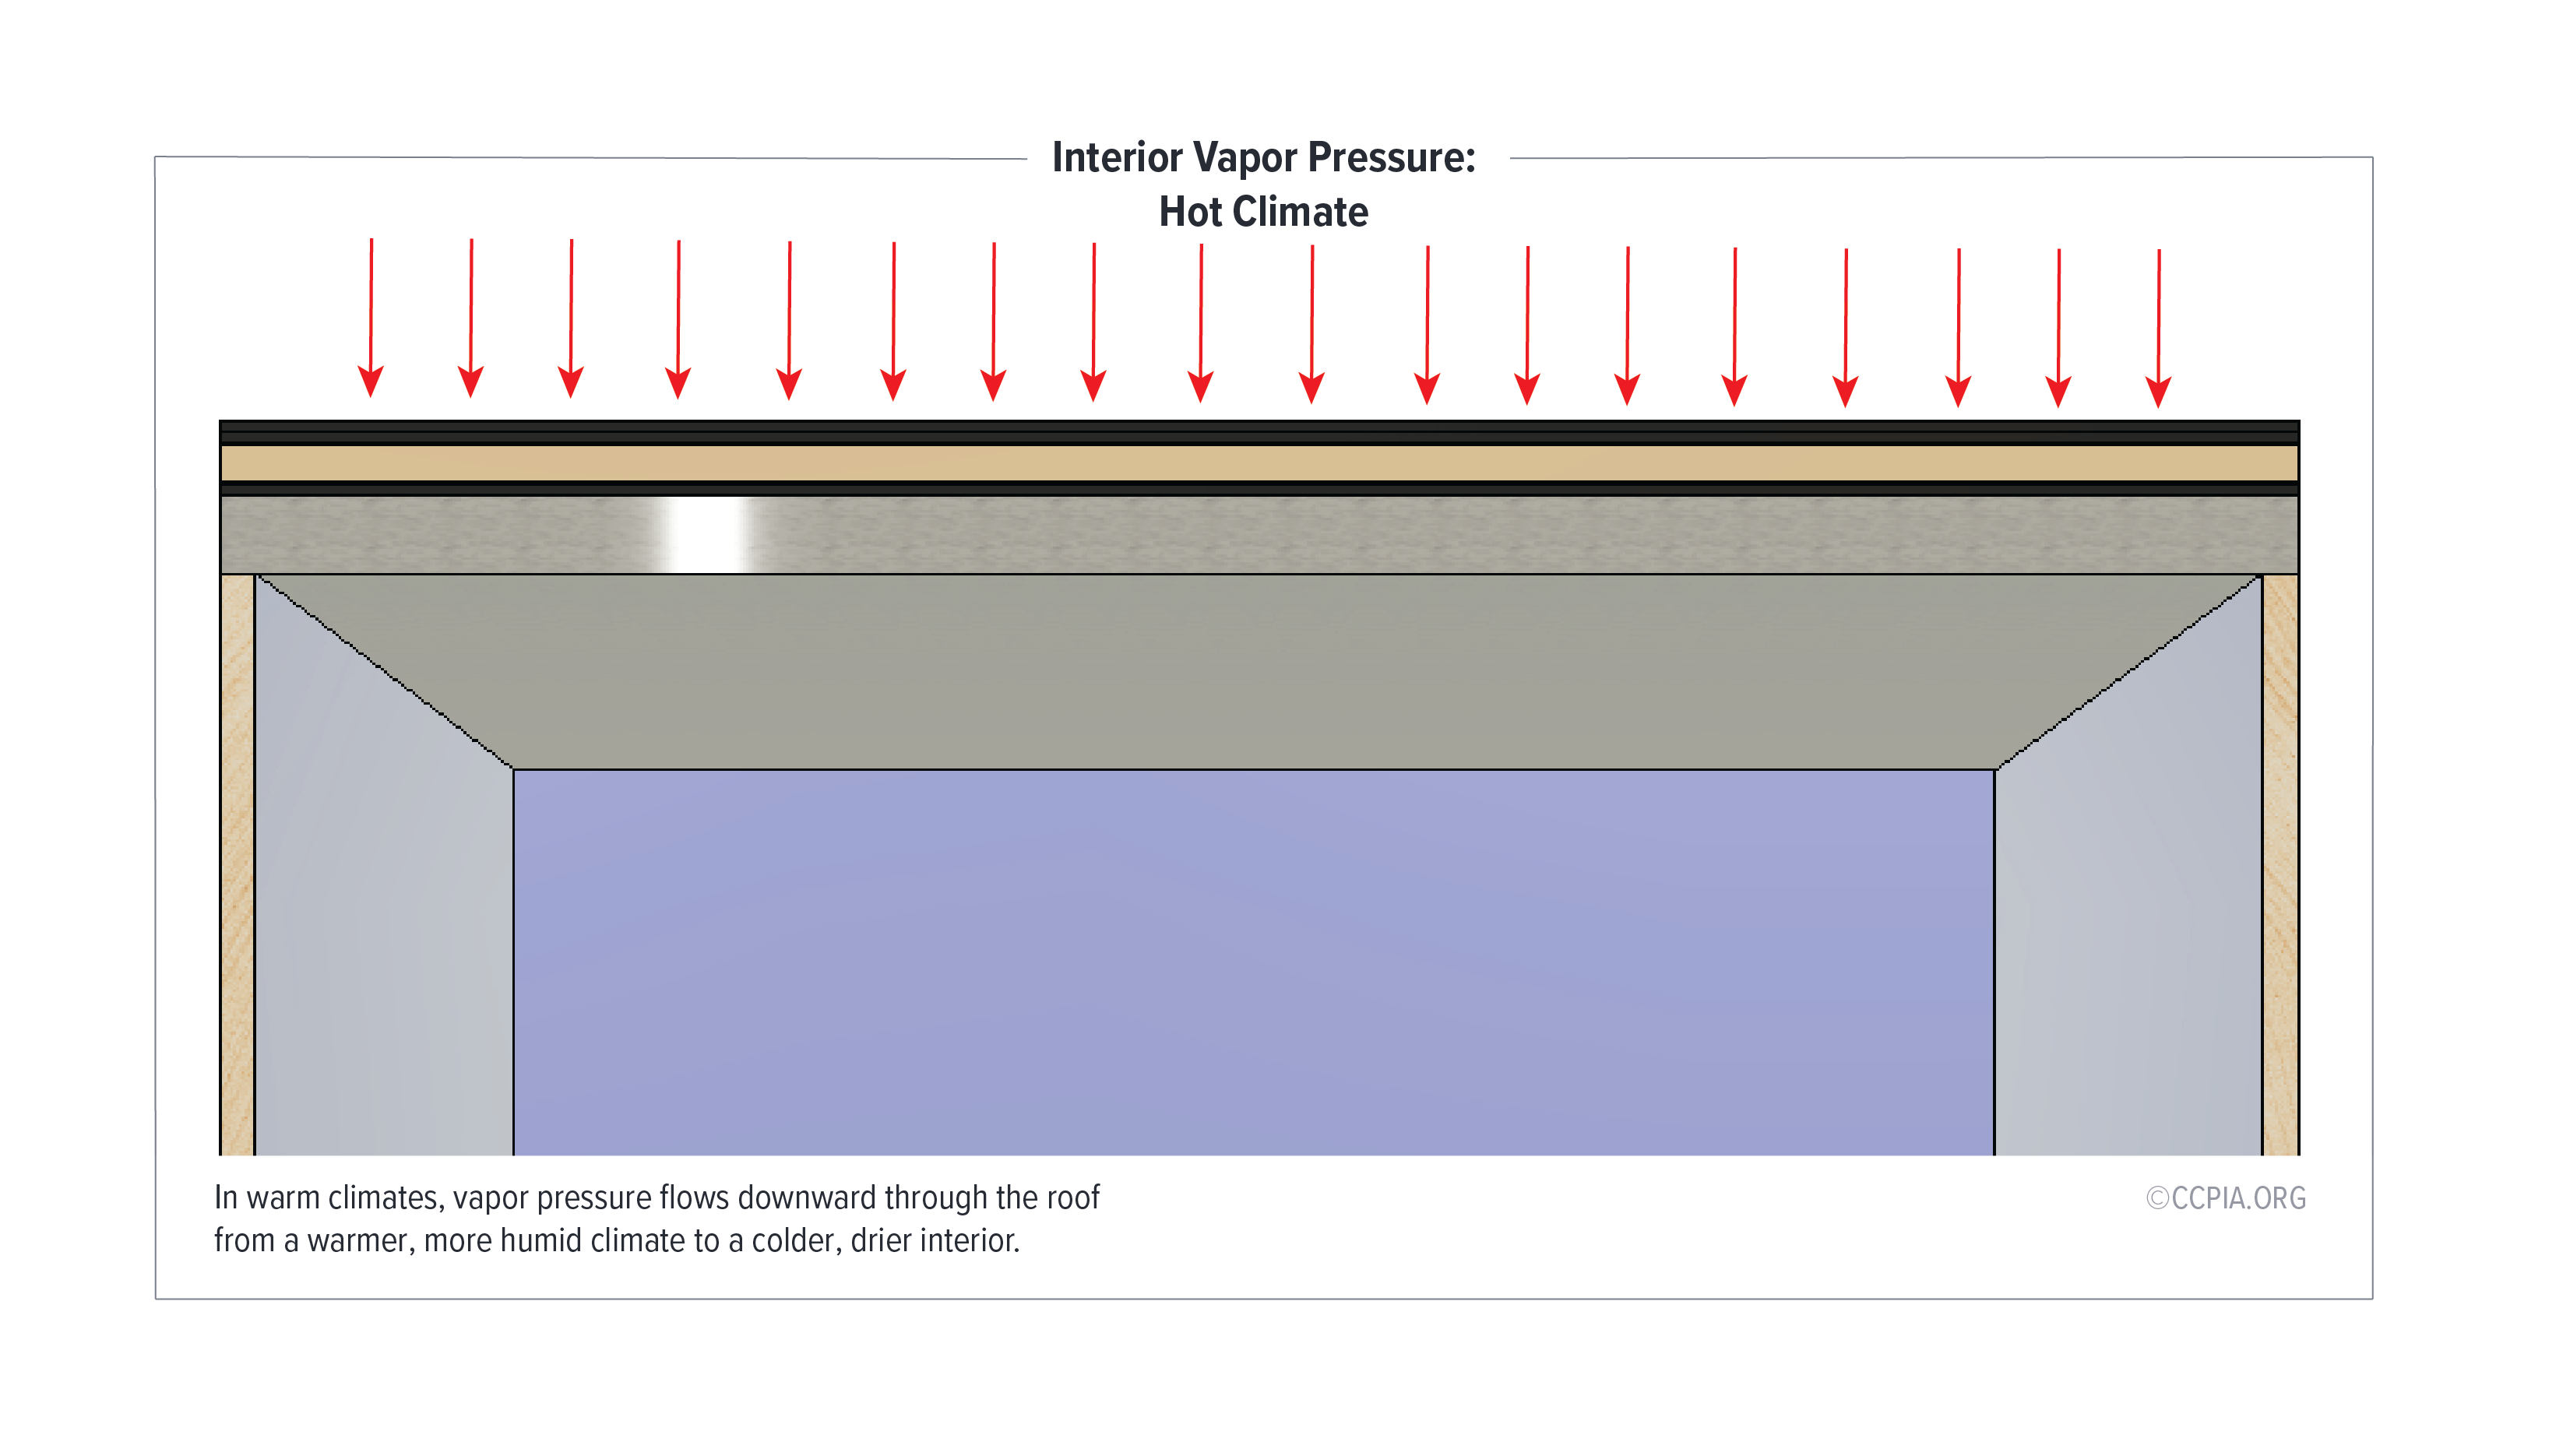 In warm/humid climates, vapor pressure flows downward through the roof from a warmer, more humid climate to a colder, drier interior.